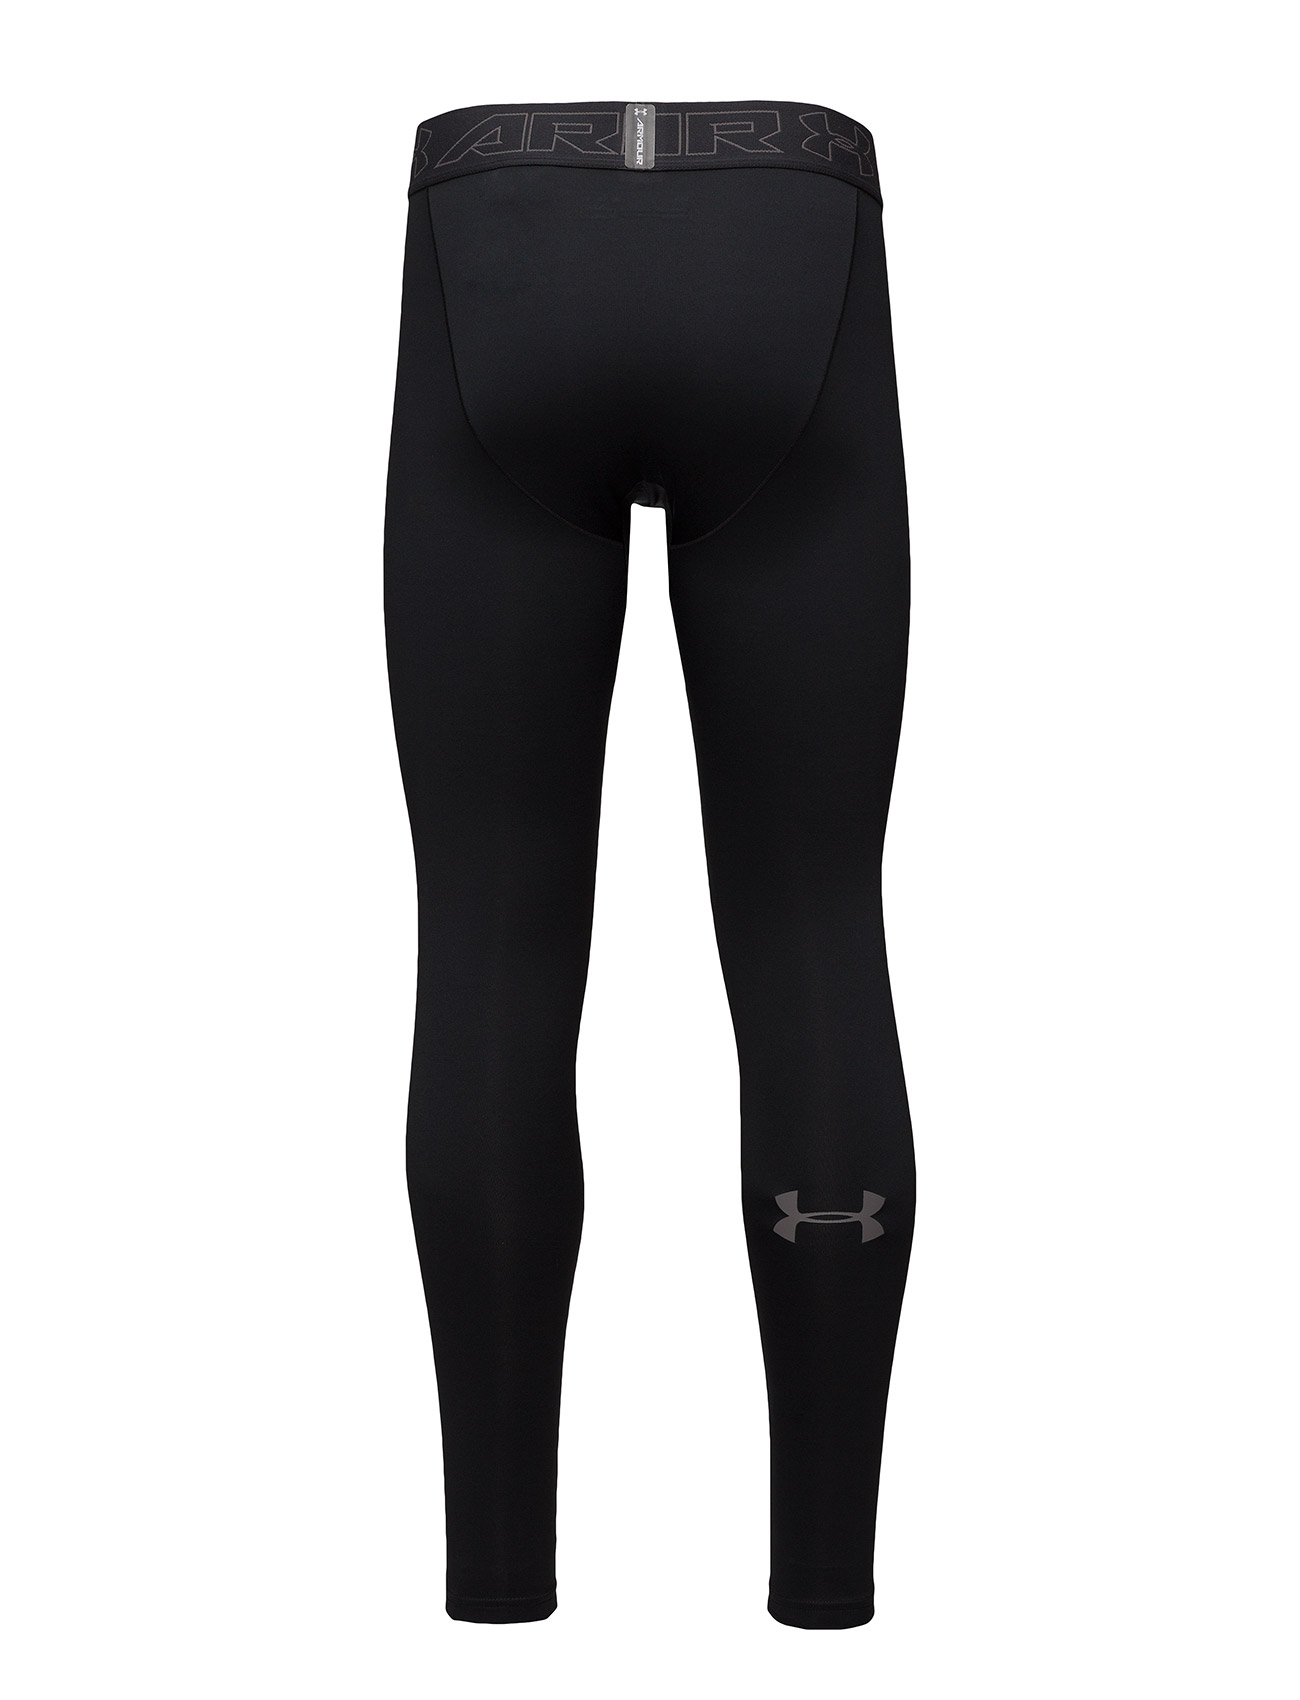 Under Armour - UA ColdGear Leggings - løbe- og træningstights - black - 1